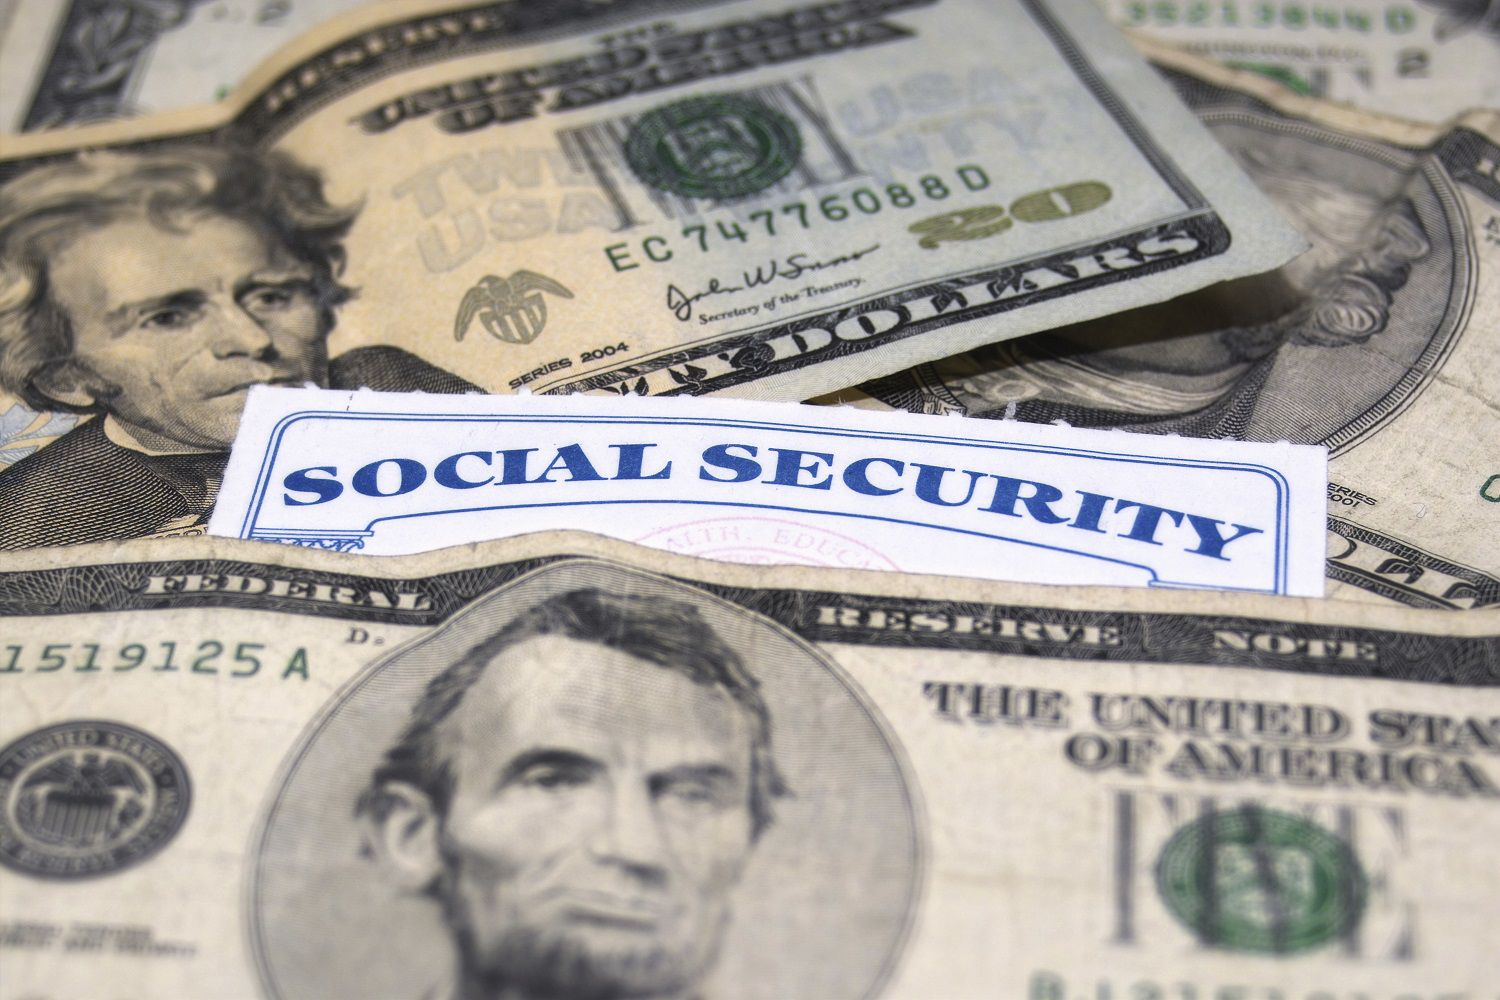 Taxation of SSDI Benefits—How Much, If Anything, Do You Have to Pay?